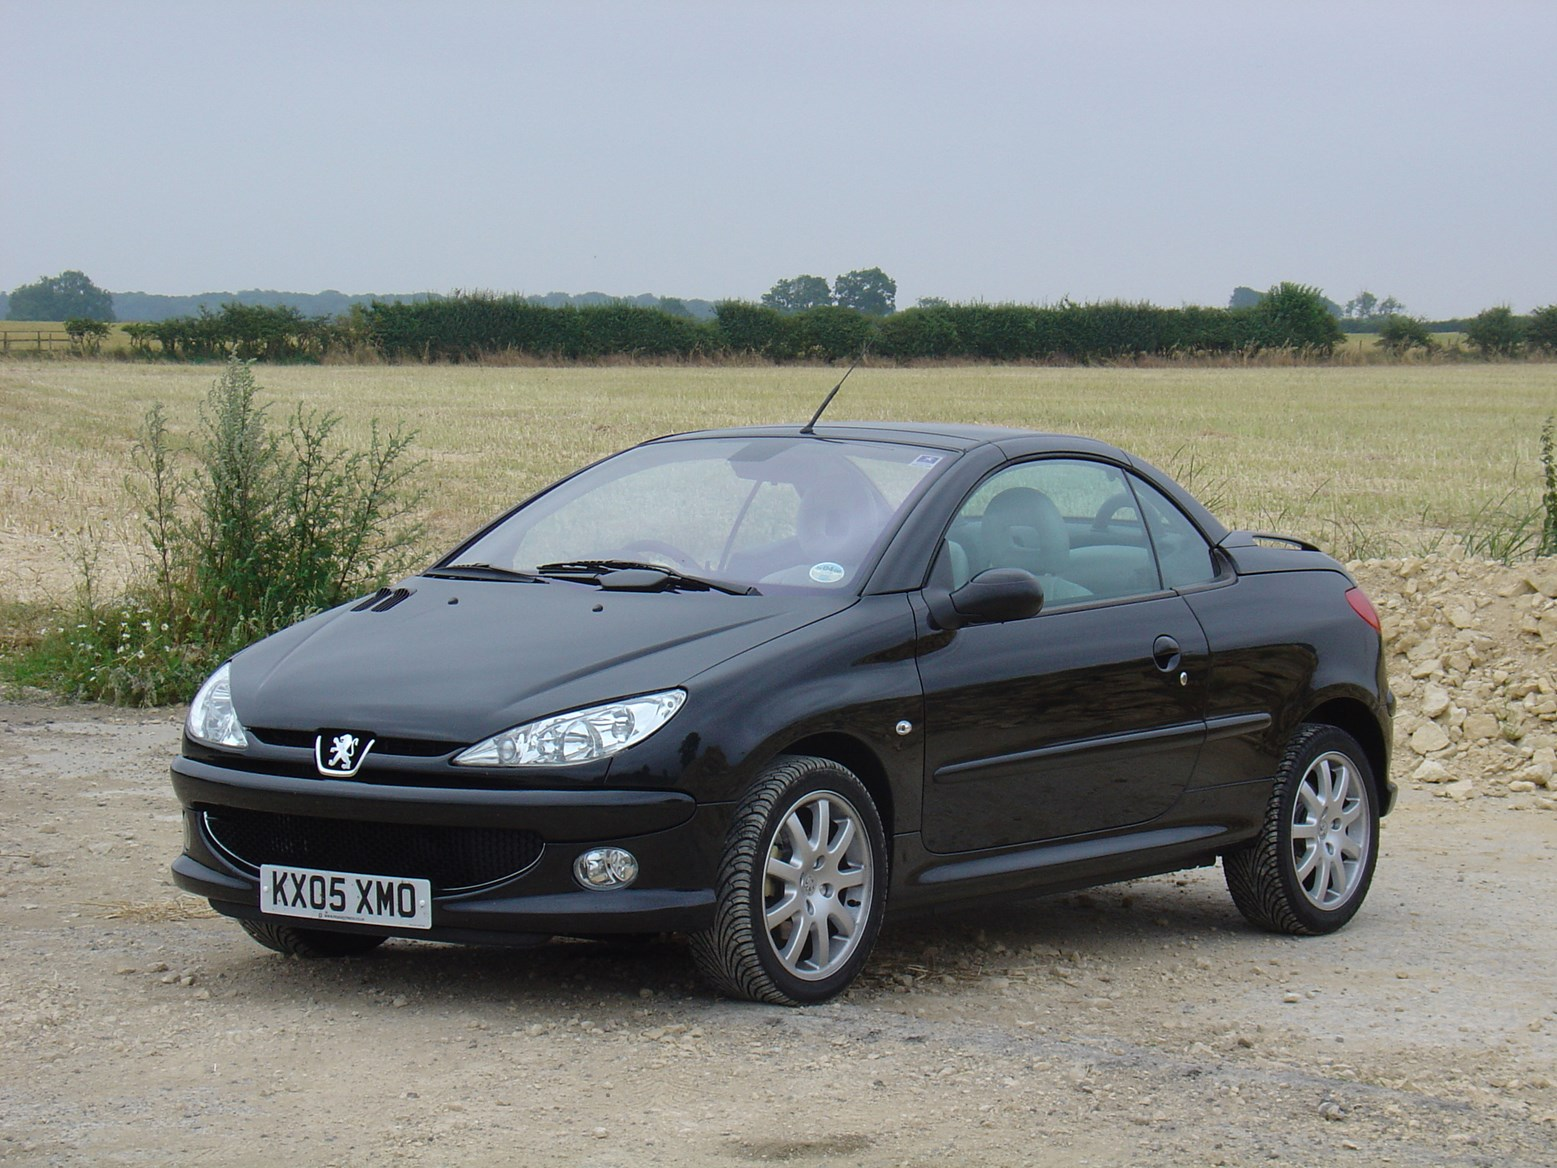 peugeot 206 coup cabriolet review 2001 2007 parkers. Black Bedroom Furniture Sets. Home Design Ideas